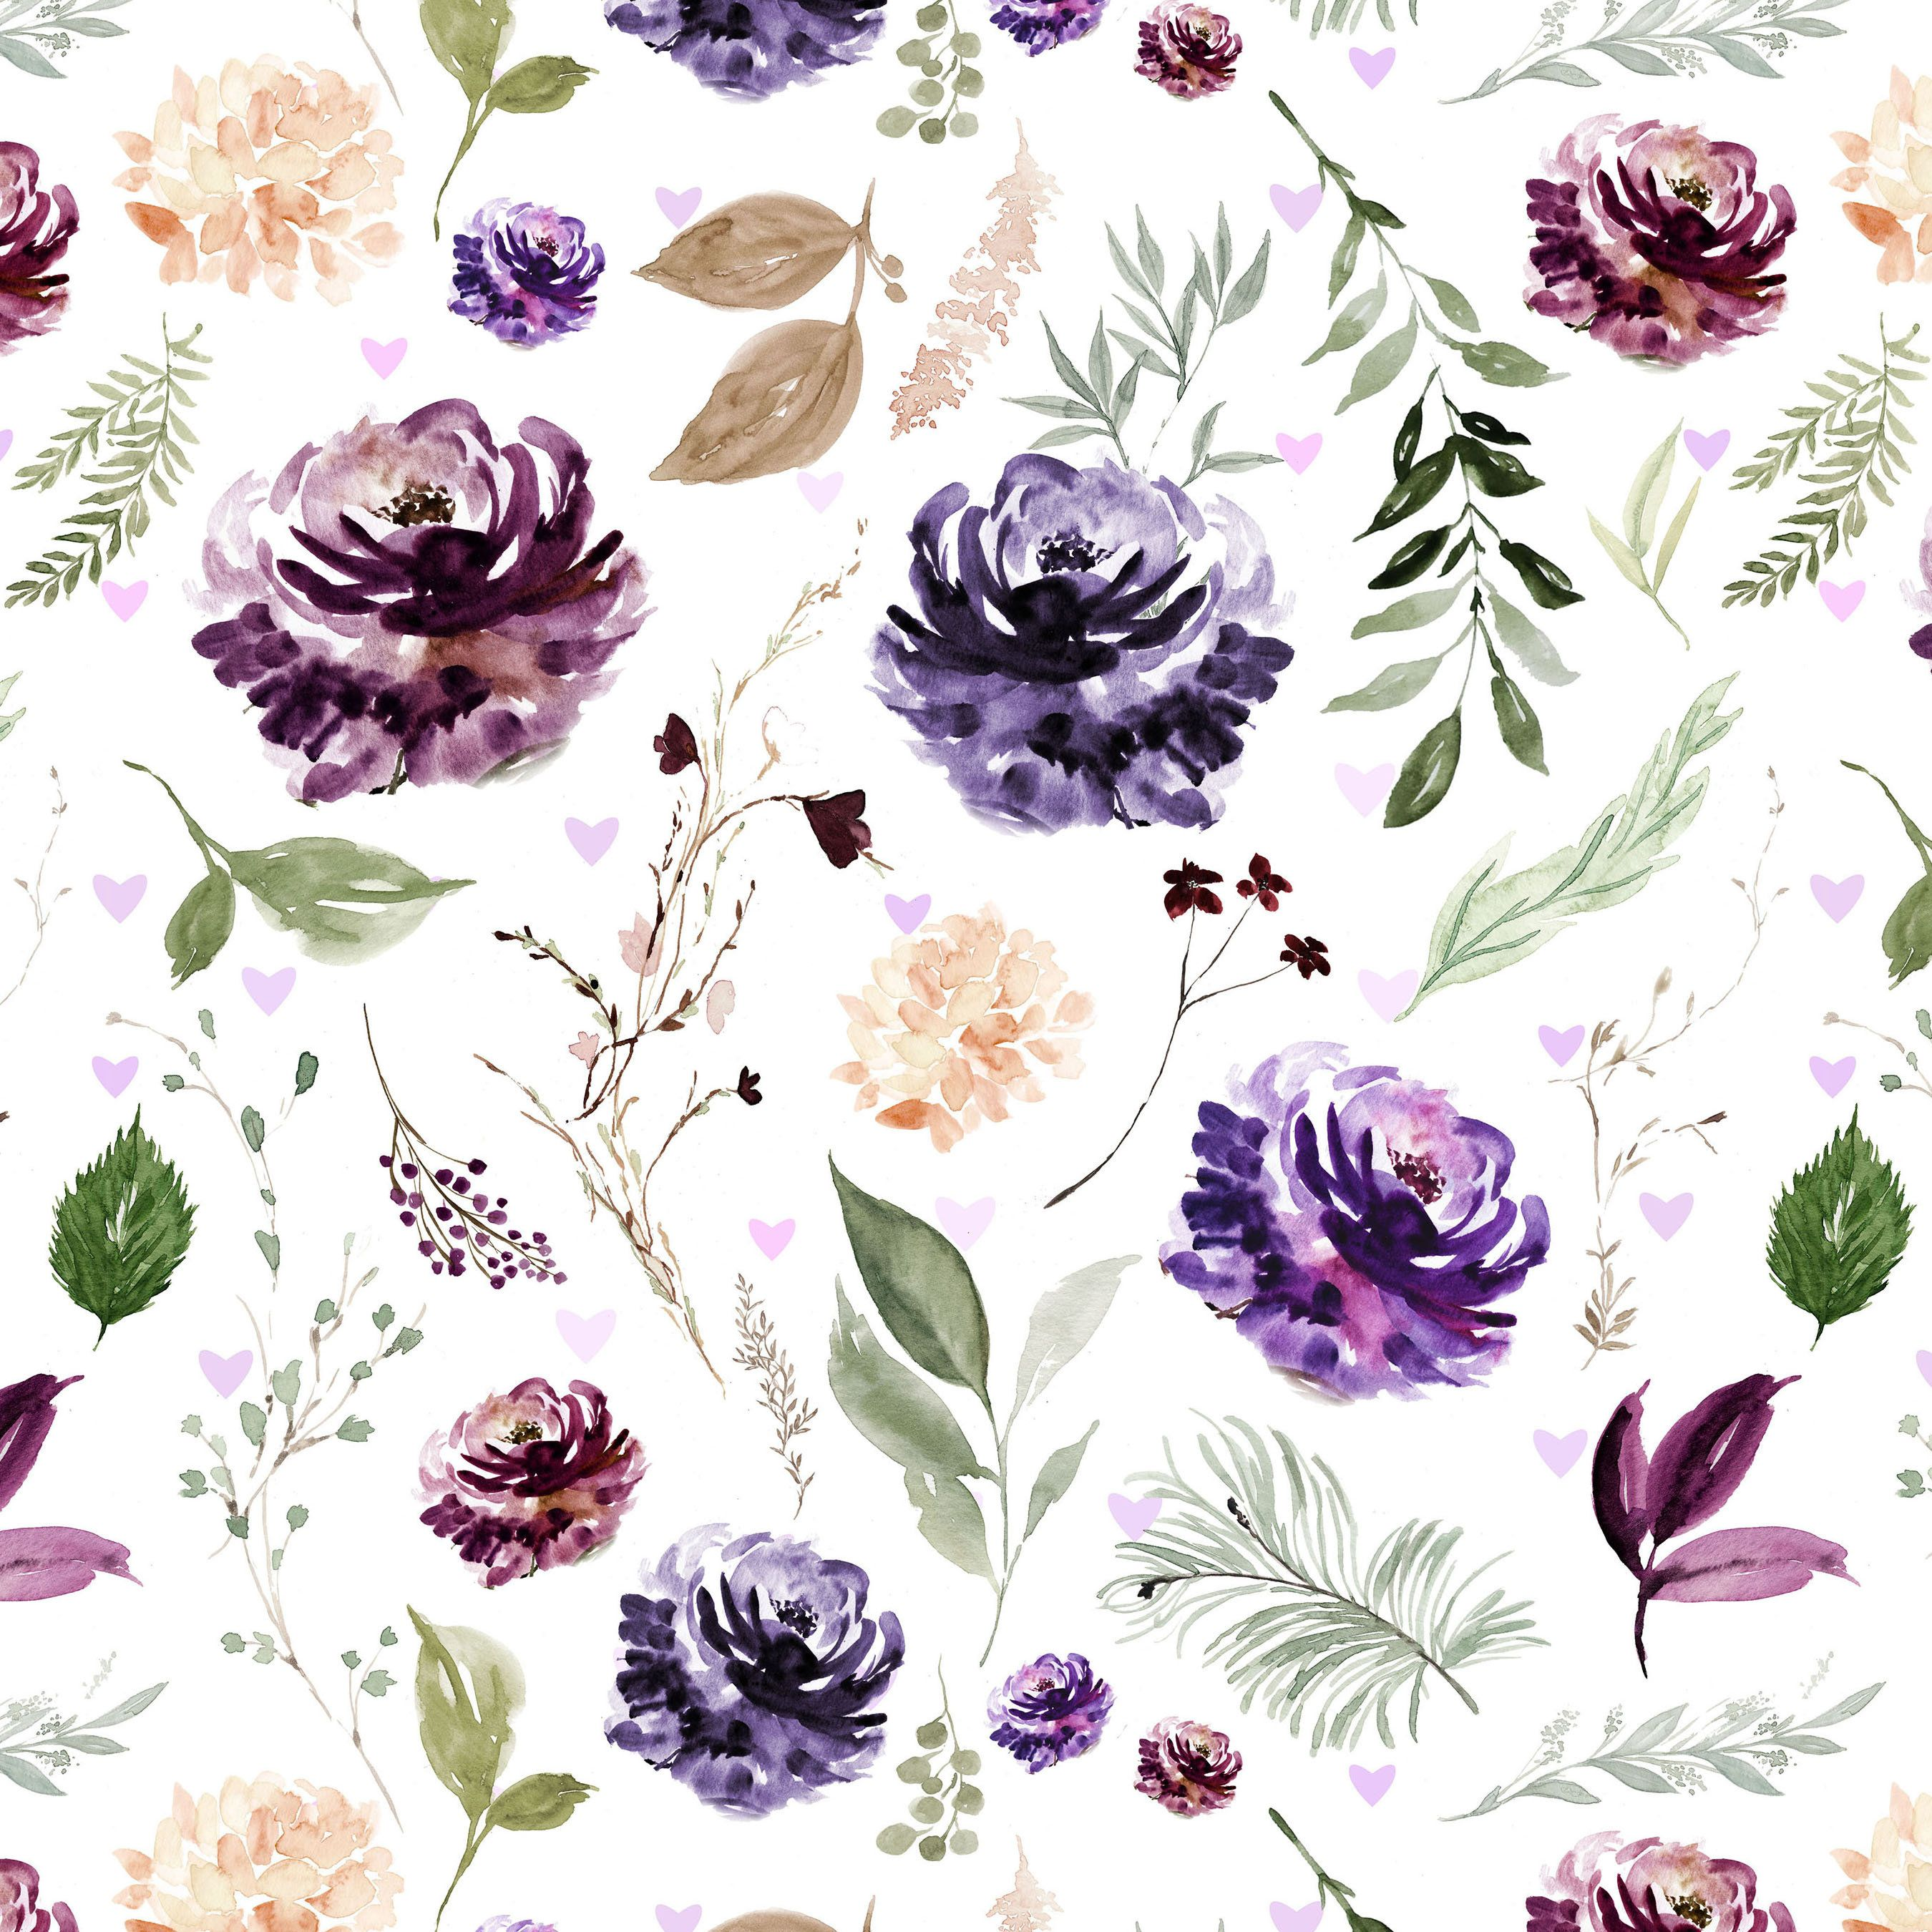 Purple Florals Fabric By The Yard Quilting Cotton Organic Etsy Floral Watercolor Floral Fabric Fabric